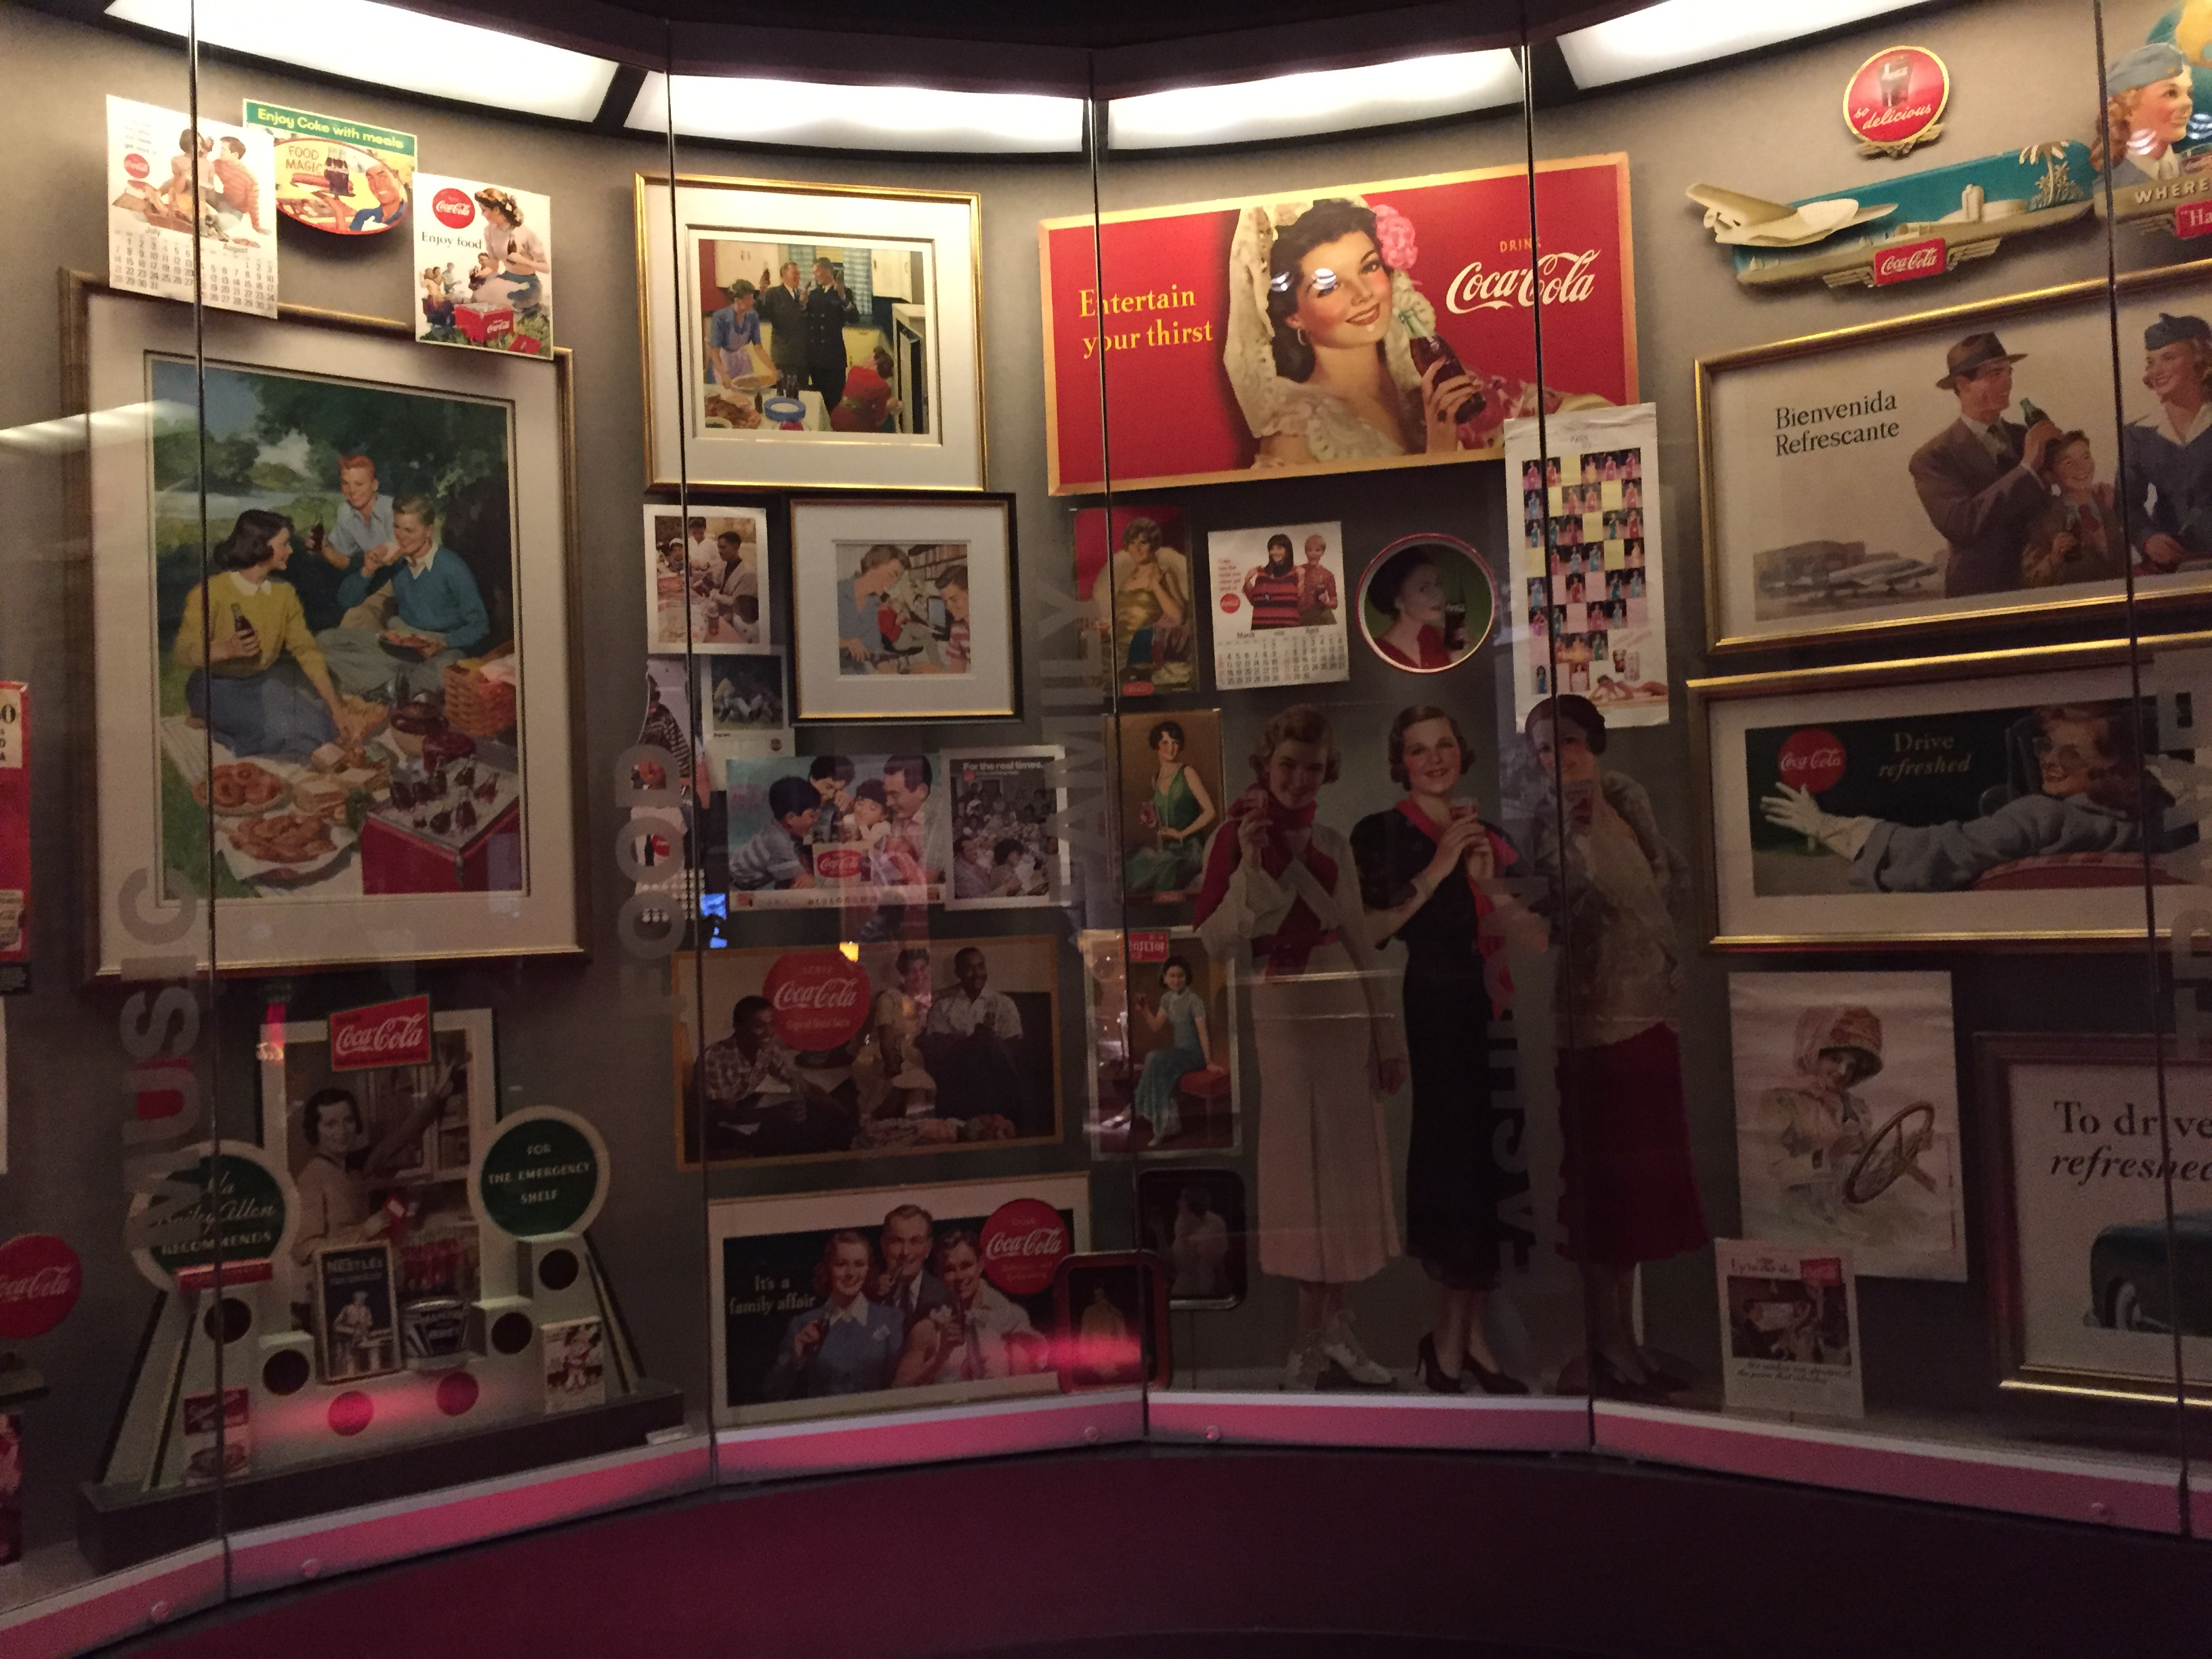 Old Coca-Cola ads and memorabilia on display behind a glass case.